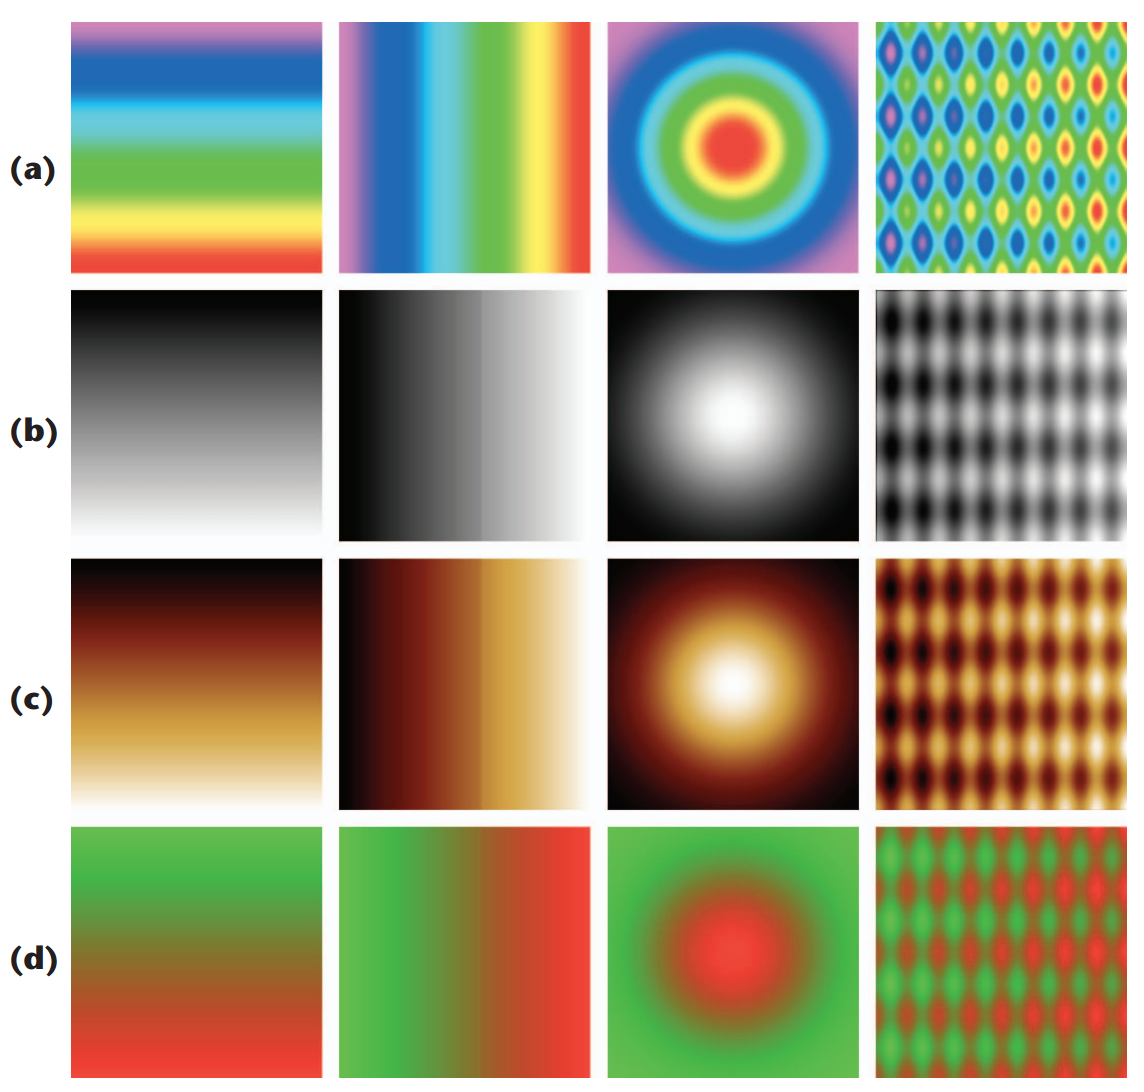 Rainbow Colormaps – What are they good for? Absolutely nothing